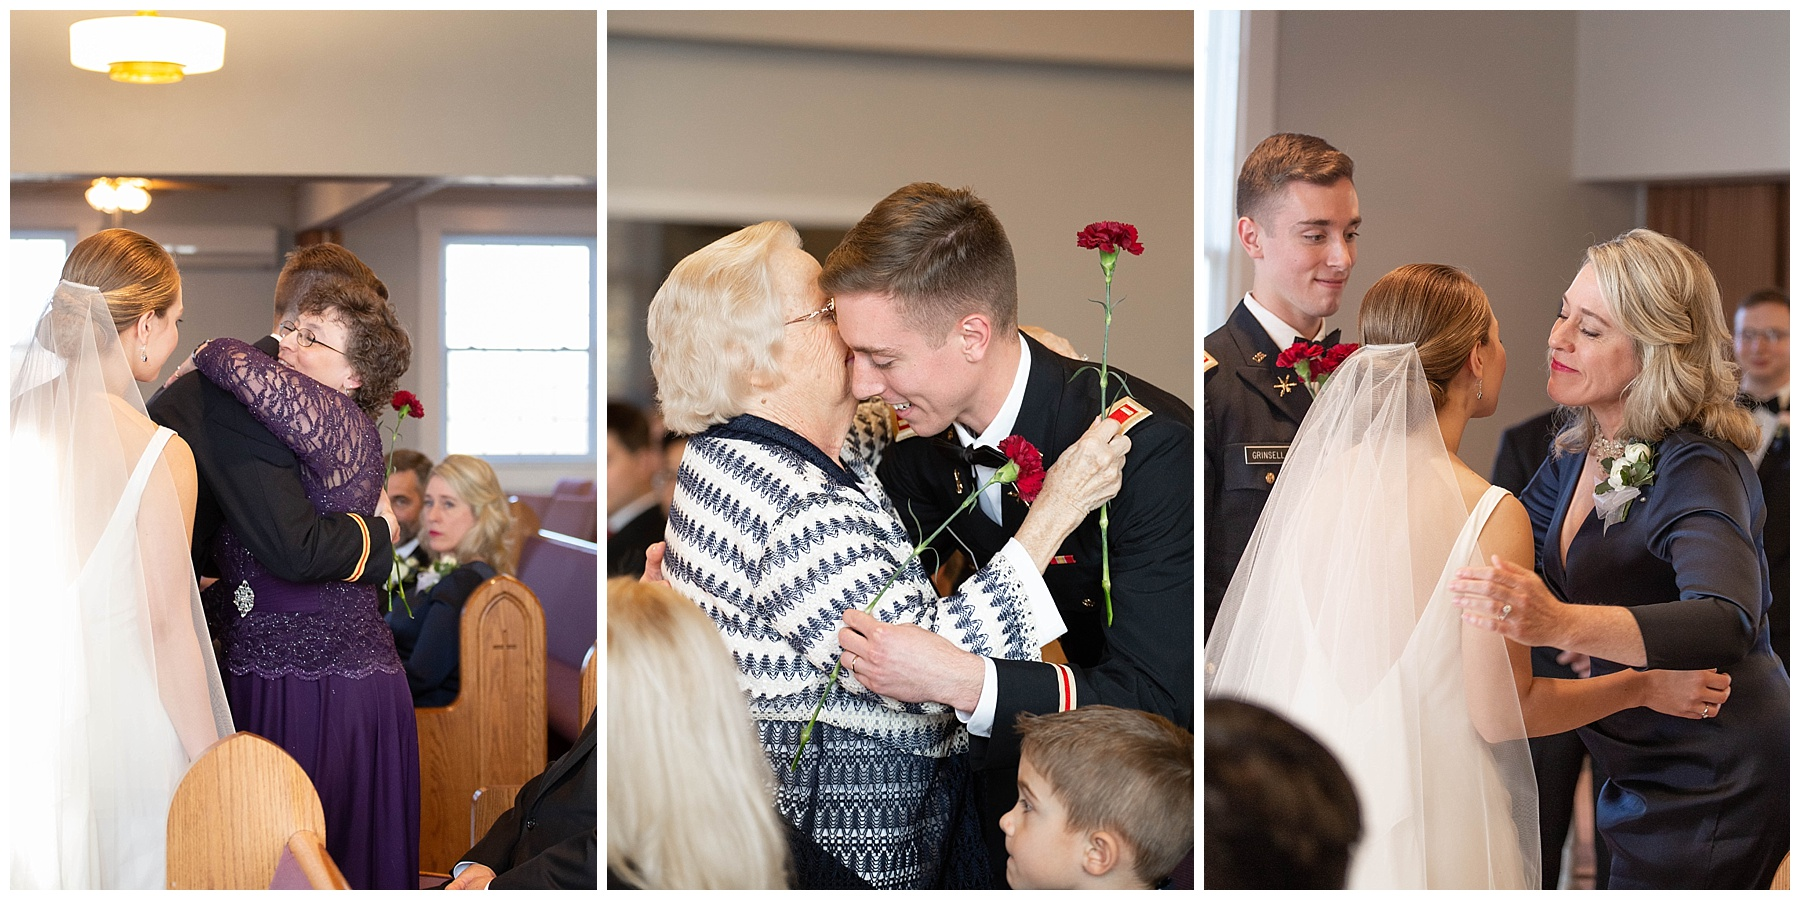 During their ceremony Nicole and Johnny gave each other's mothers and grandmothers flowers to symbolize the joining of their families